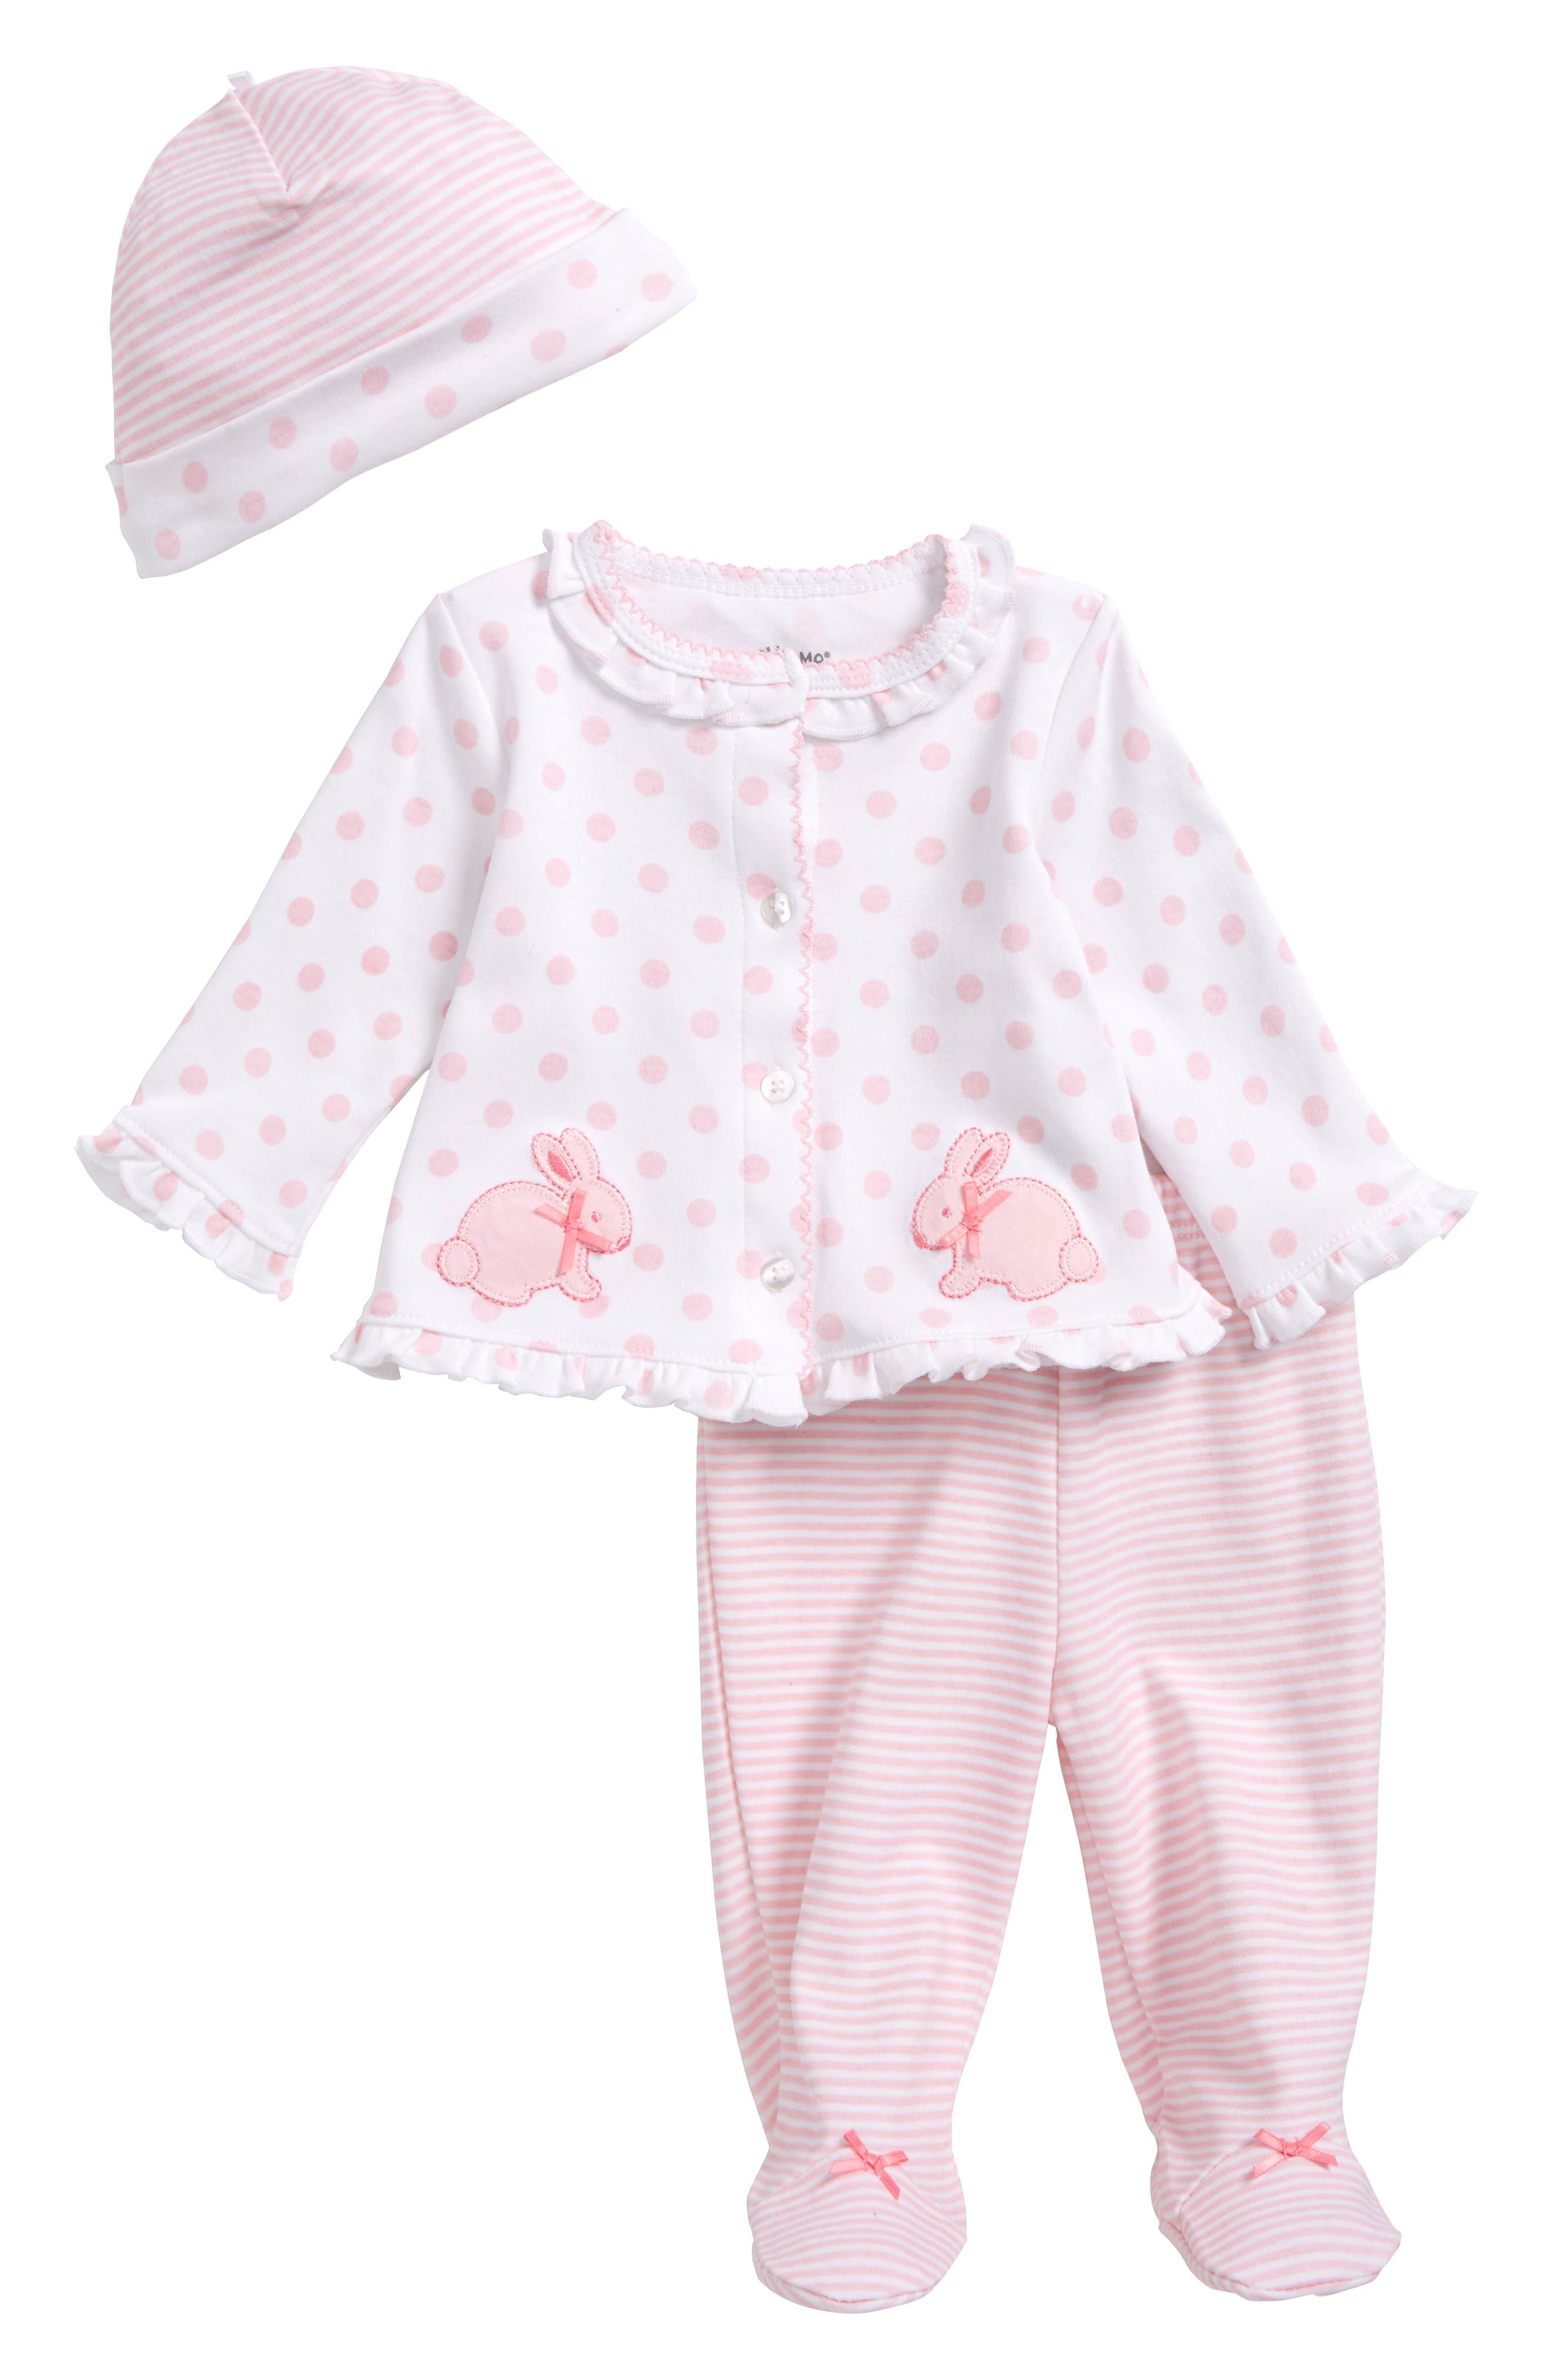 Little Me Bunny Cardigan, Hat & Footed Pants Set (Baby Girls)